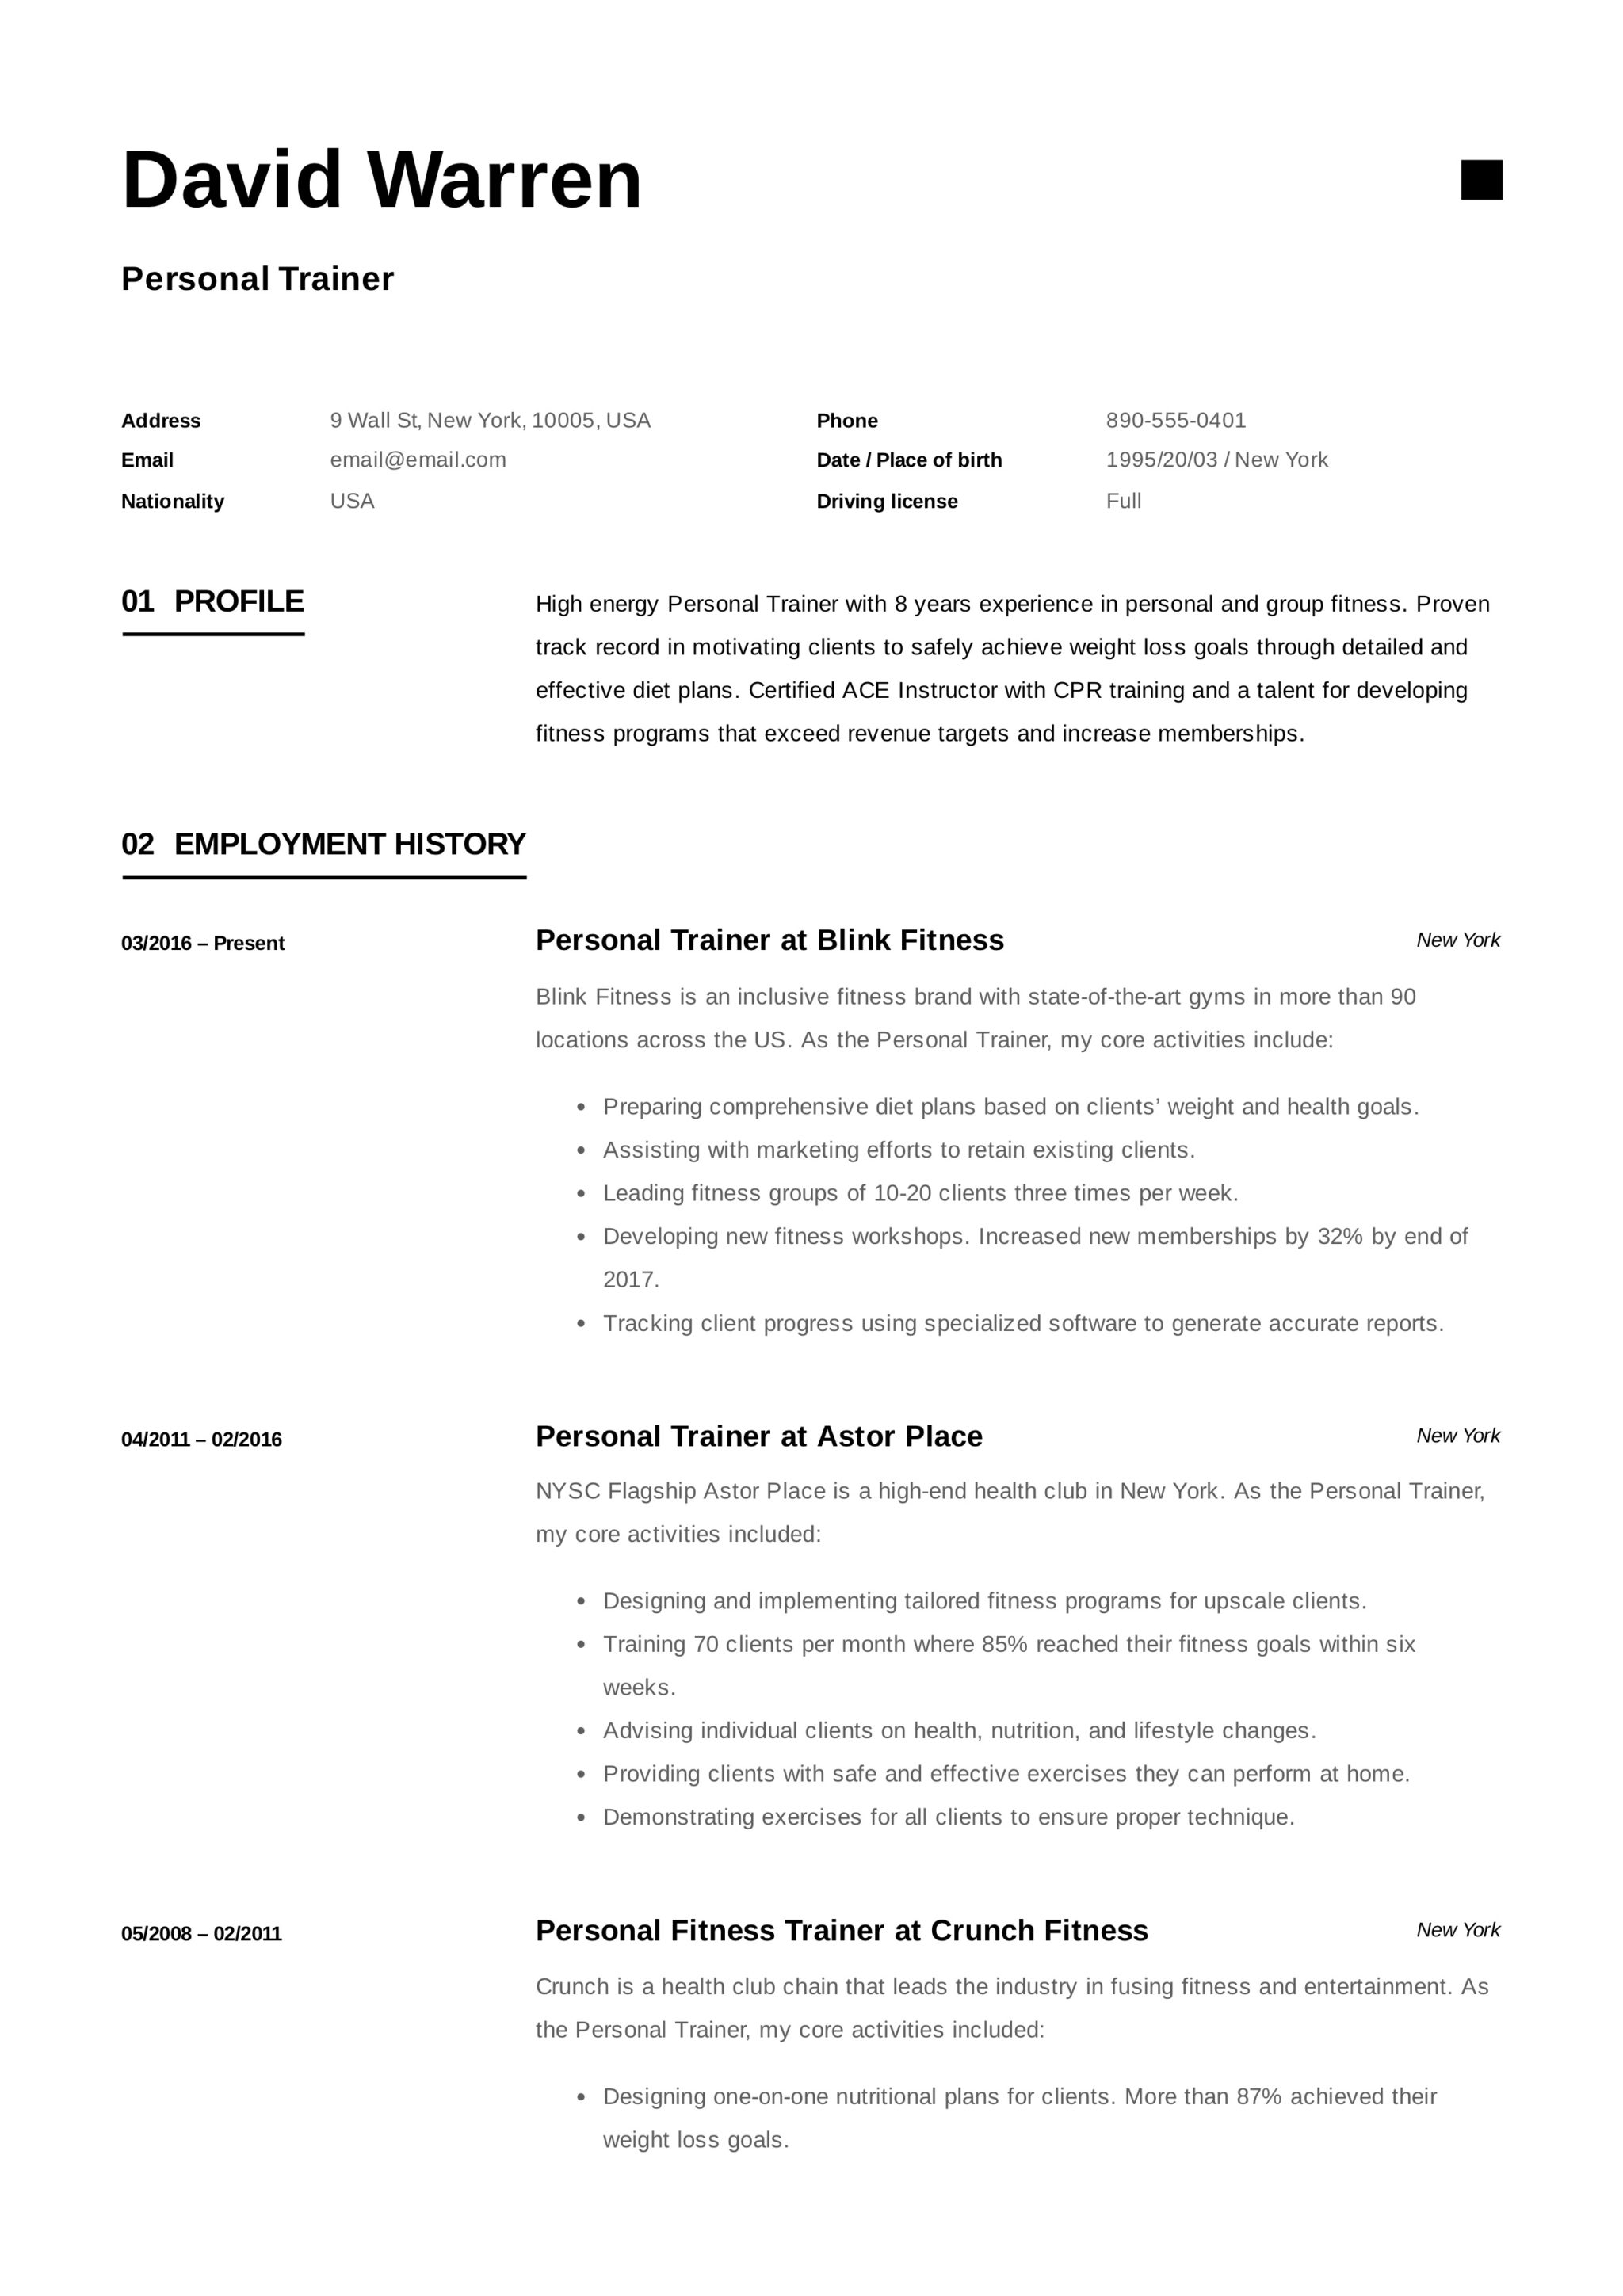 Personal Trainer Resume Objective Examples 12 Personal Trainer Resume Sample S 2018 Free